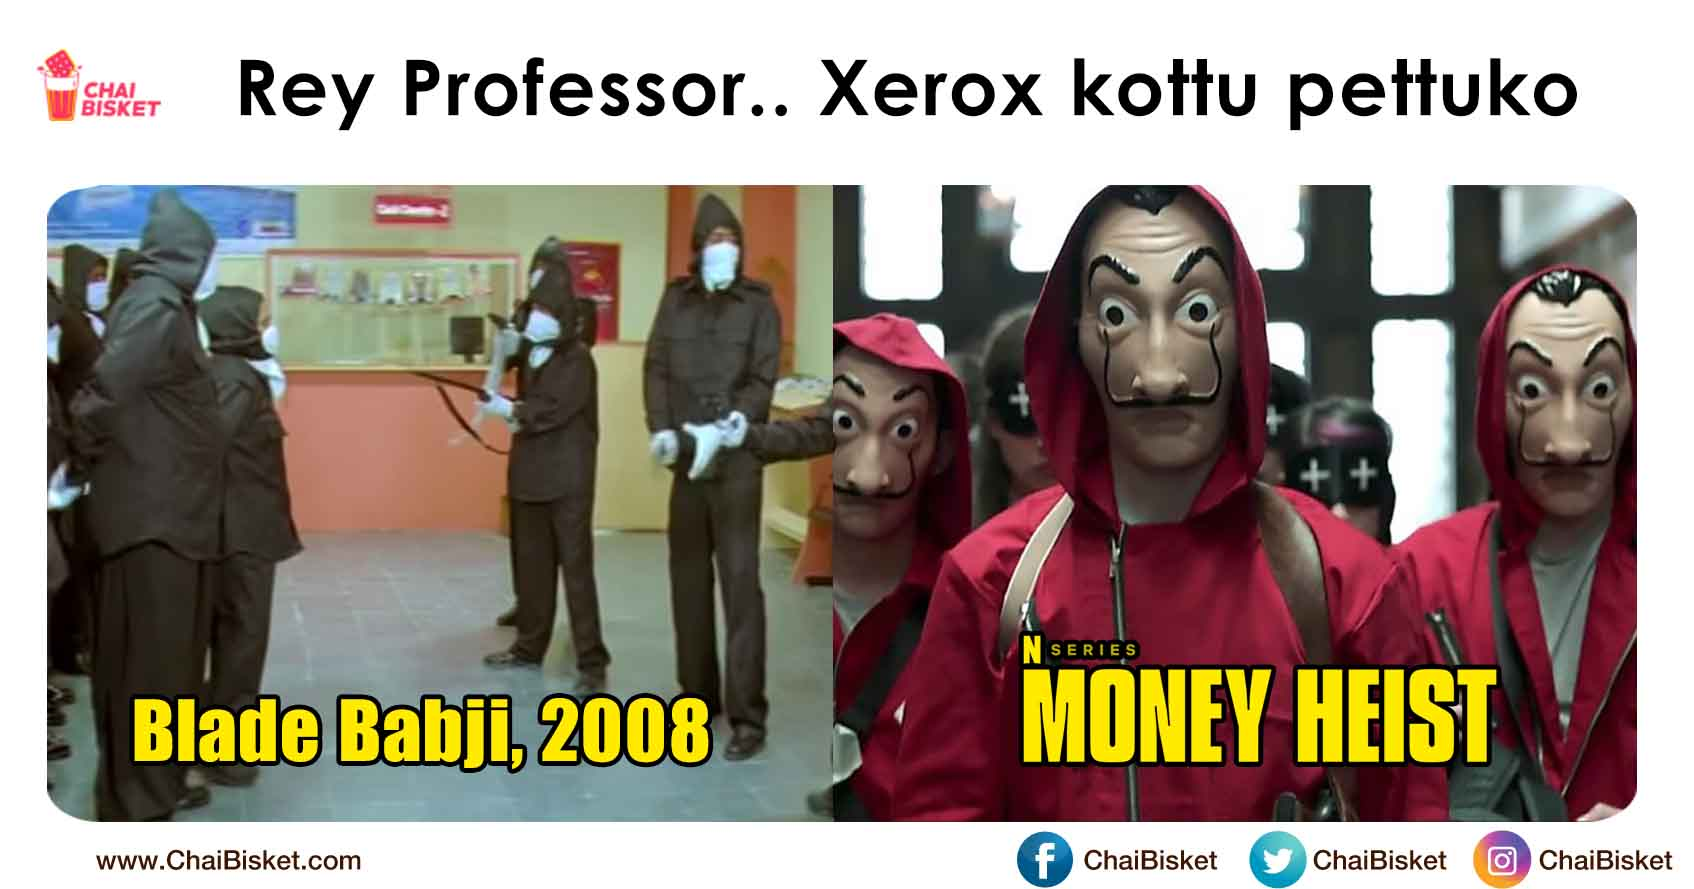 18 Mad Telugu Memes For Those Who've Watched 'Money Heist' - Chai Bisket